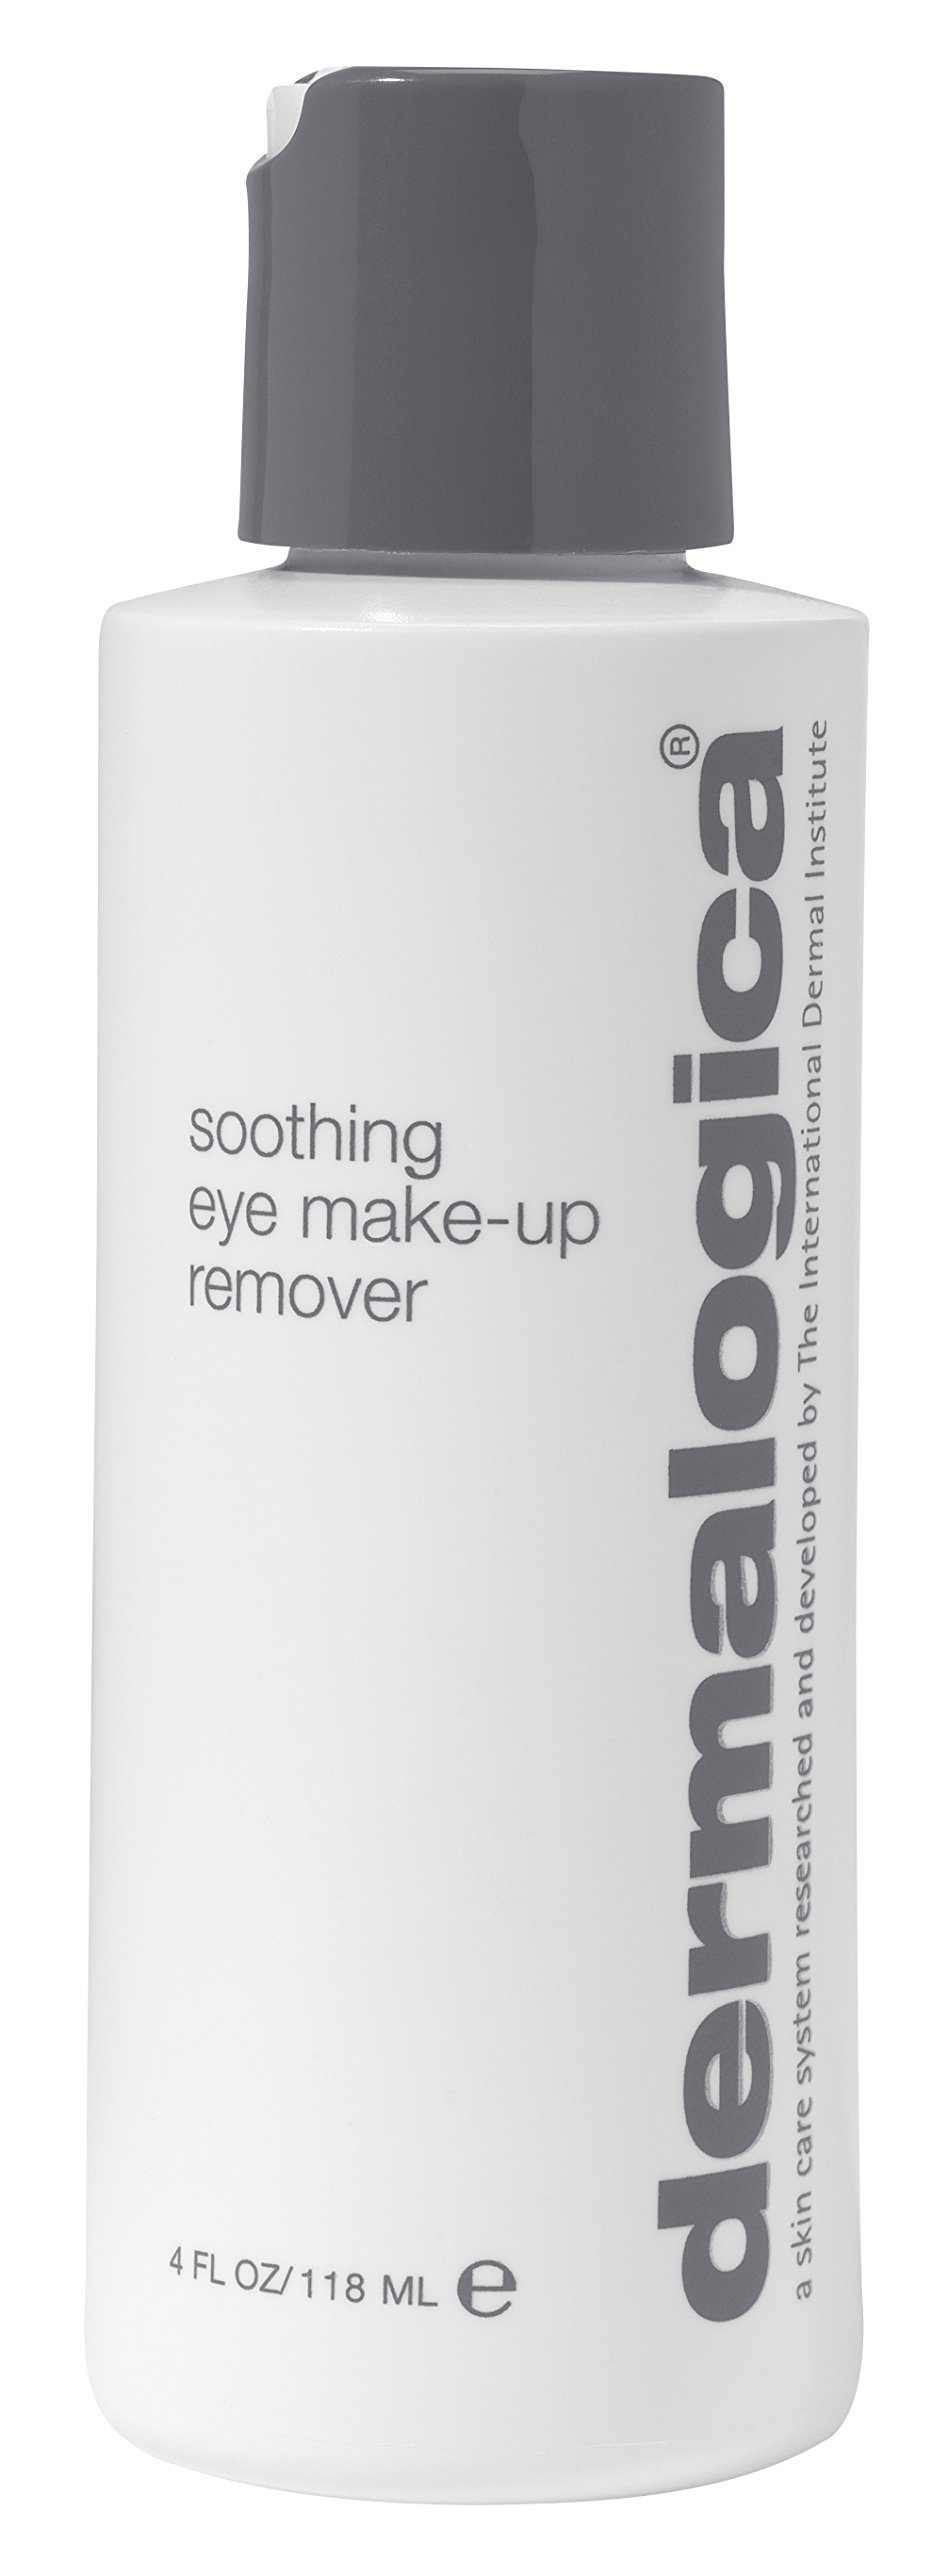 Dermalogica Soothing Eye Make Up Remover, 4 oz